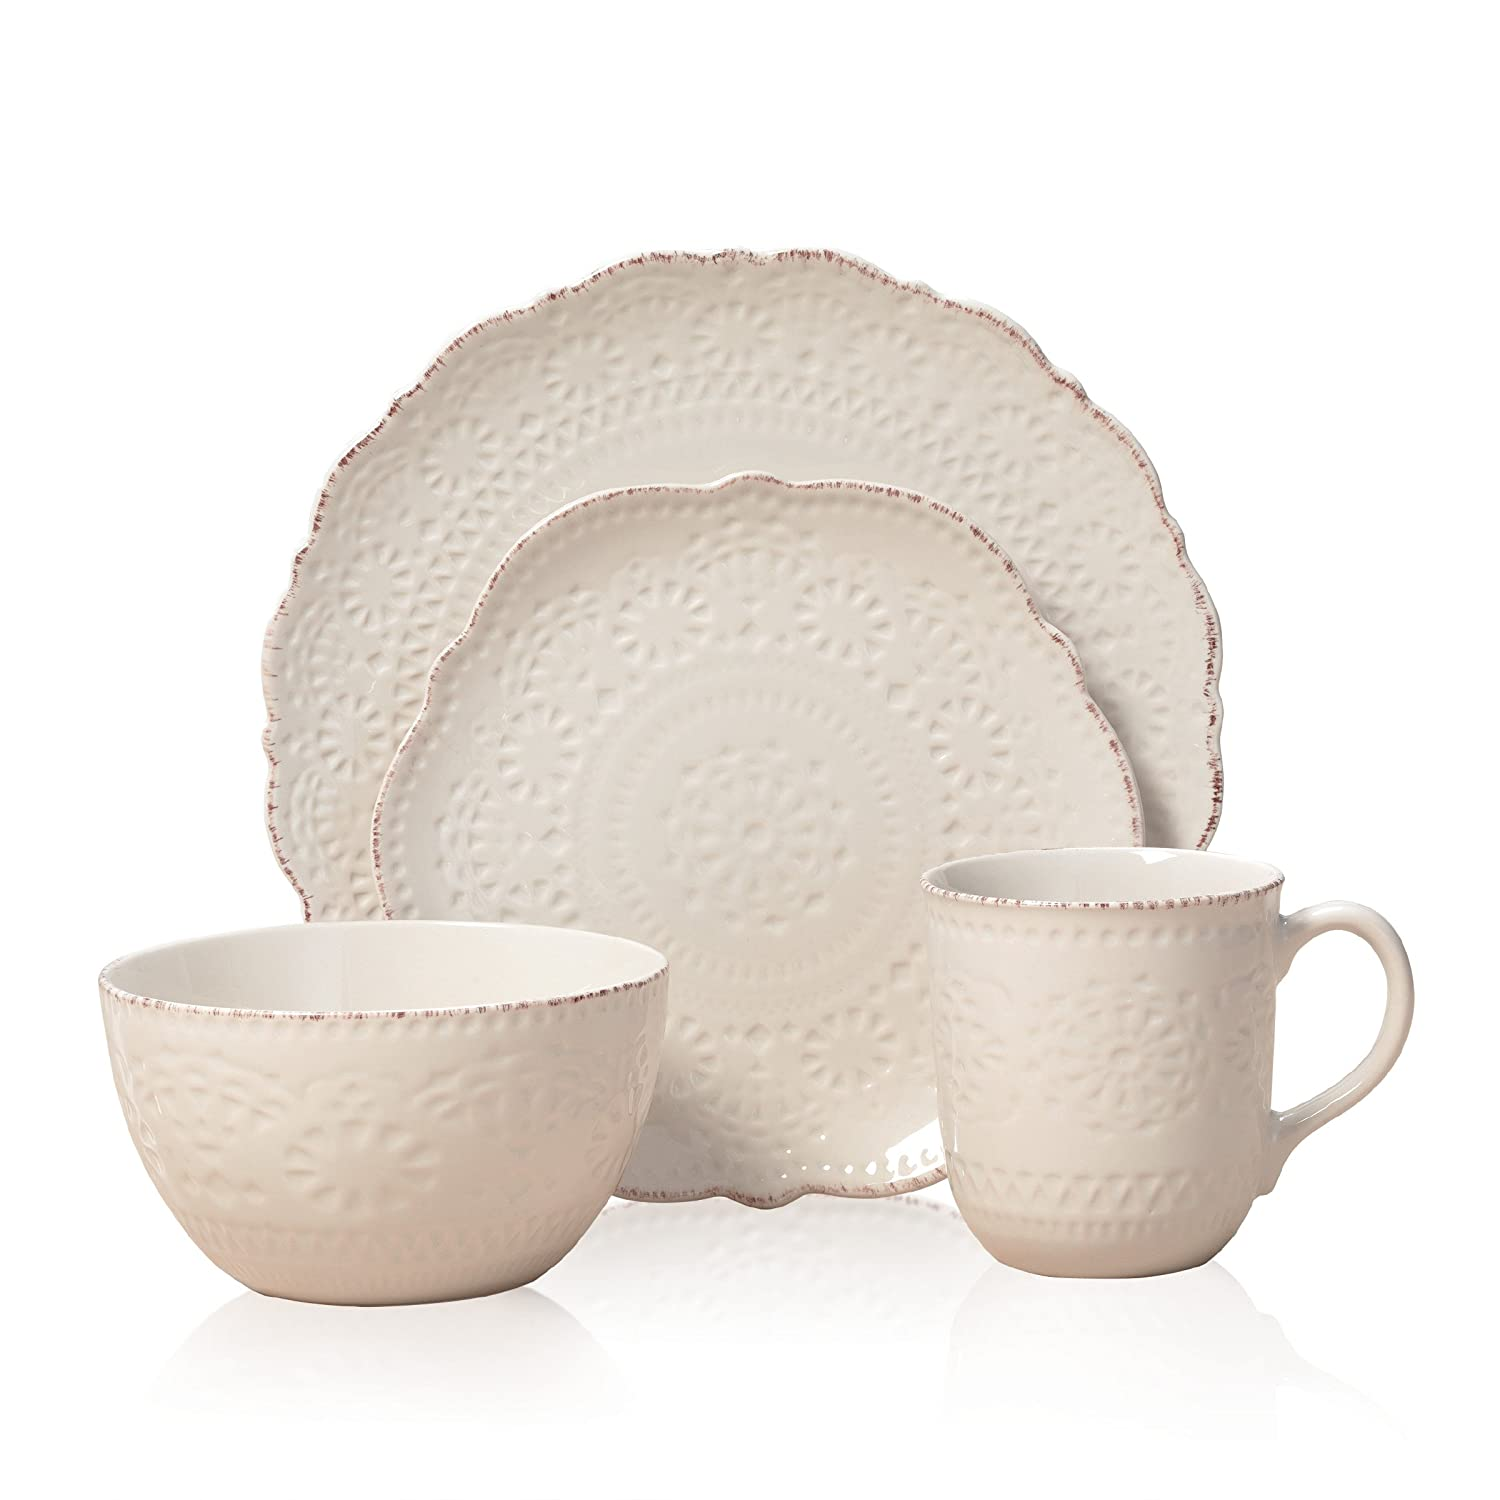 Pfaltzgraff 5143149 Chateau Cream 16-Piece Stoneware Dinnerware Set Service for 4 Off White